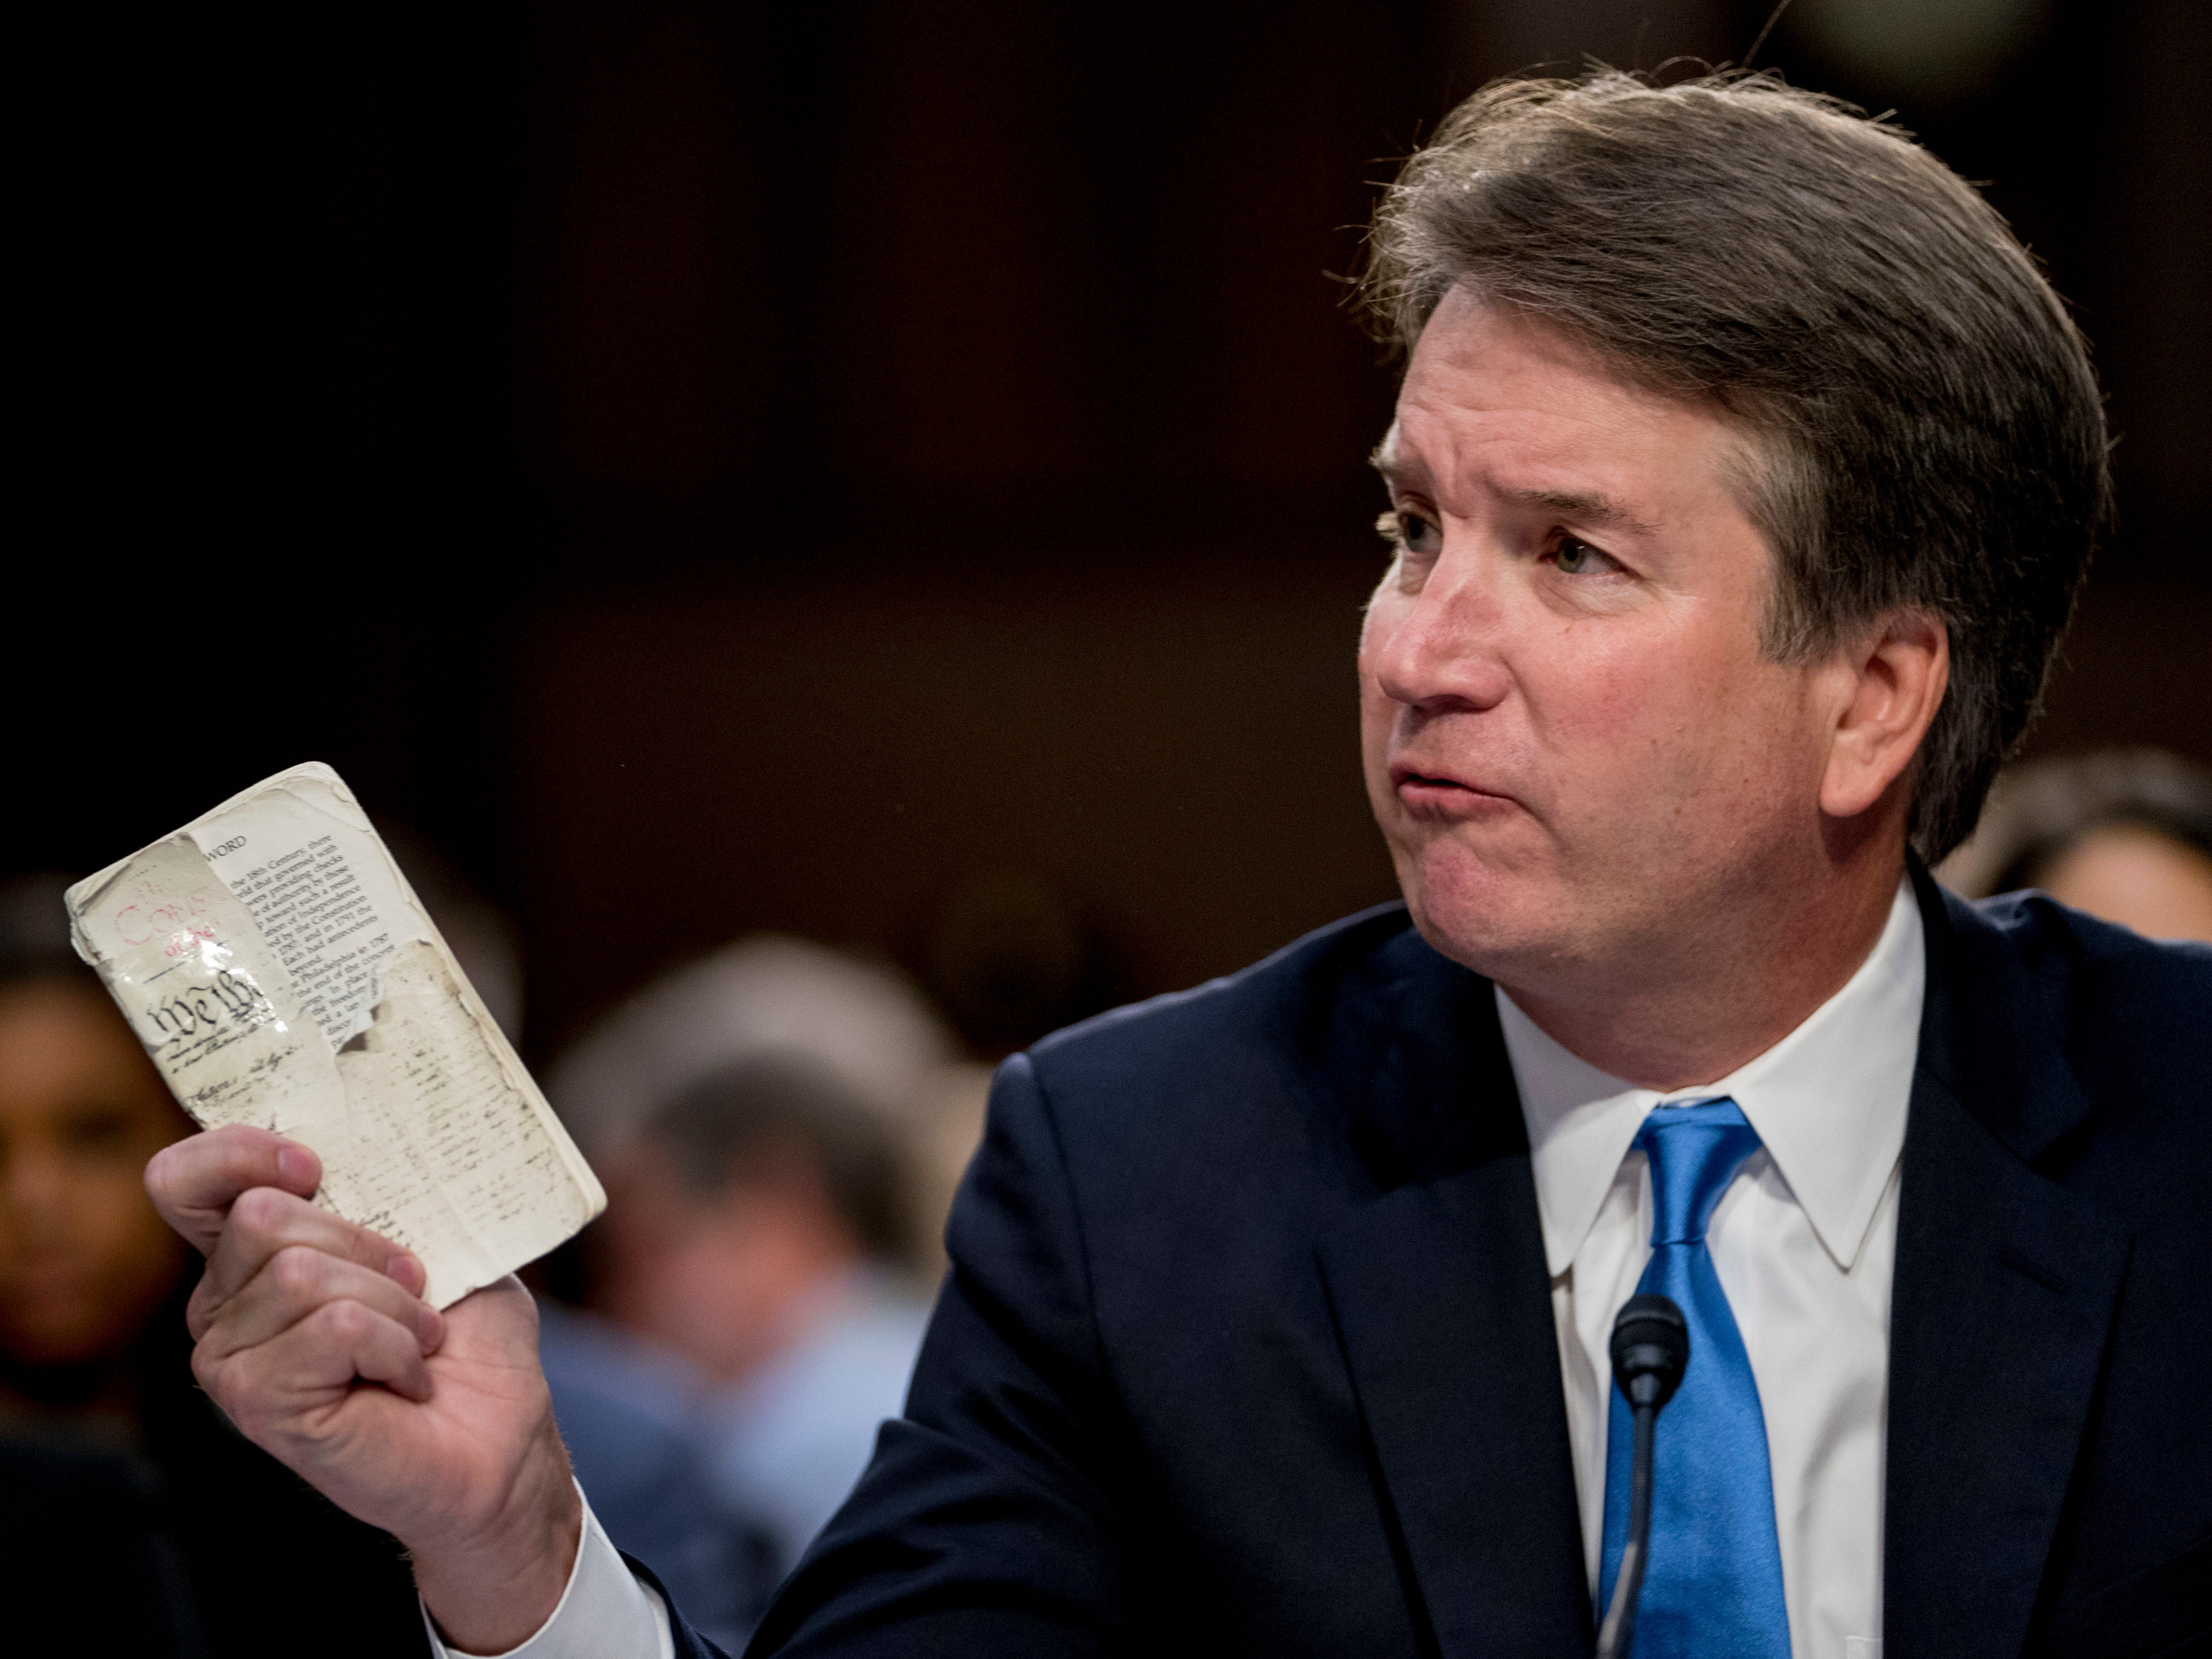 President Donald Trump's Supreme Court nominee, Brett Kavanaugh, a federal appeals court judge, holds up a worn copy of the Constitution of the United States as he testifies before the Senate Judiciary Committee on Capitol Hill in Washington, Wednesday, Sept. 5, 2018, for the second day of his confirmation to replace retired Justice Anthony Kennedy. (AP Photo/Andrew Harnik) ORG XMIT: DCAH120